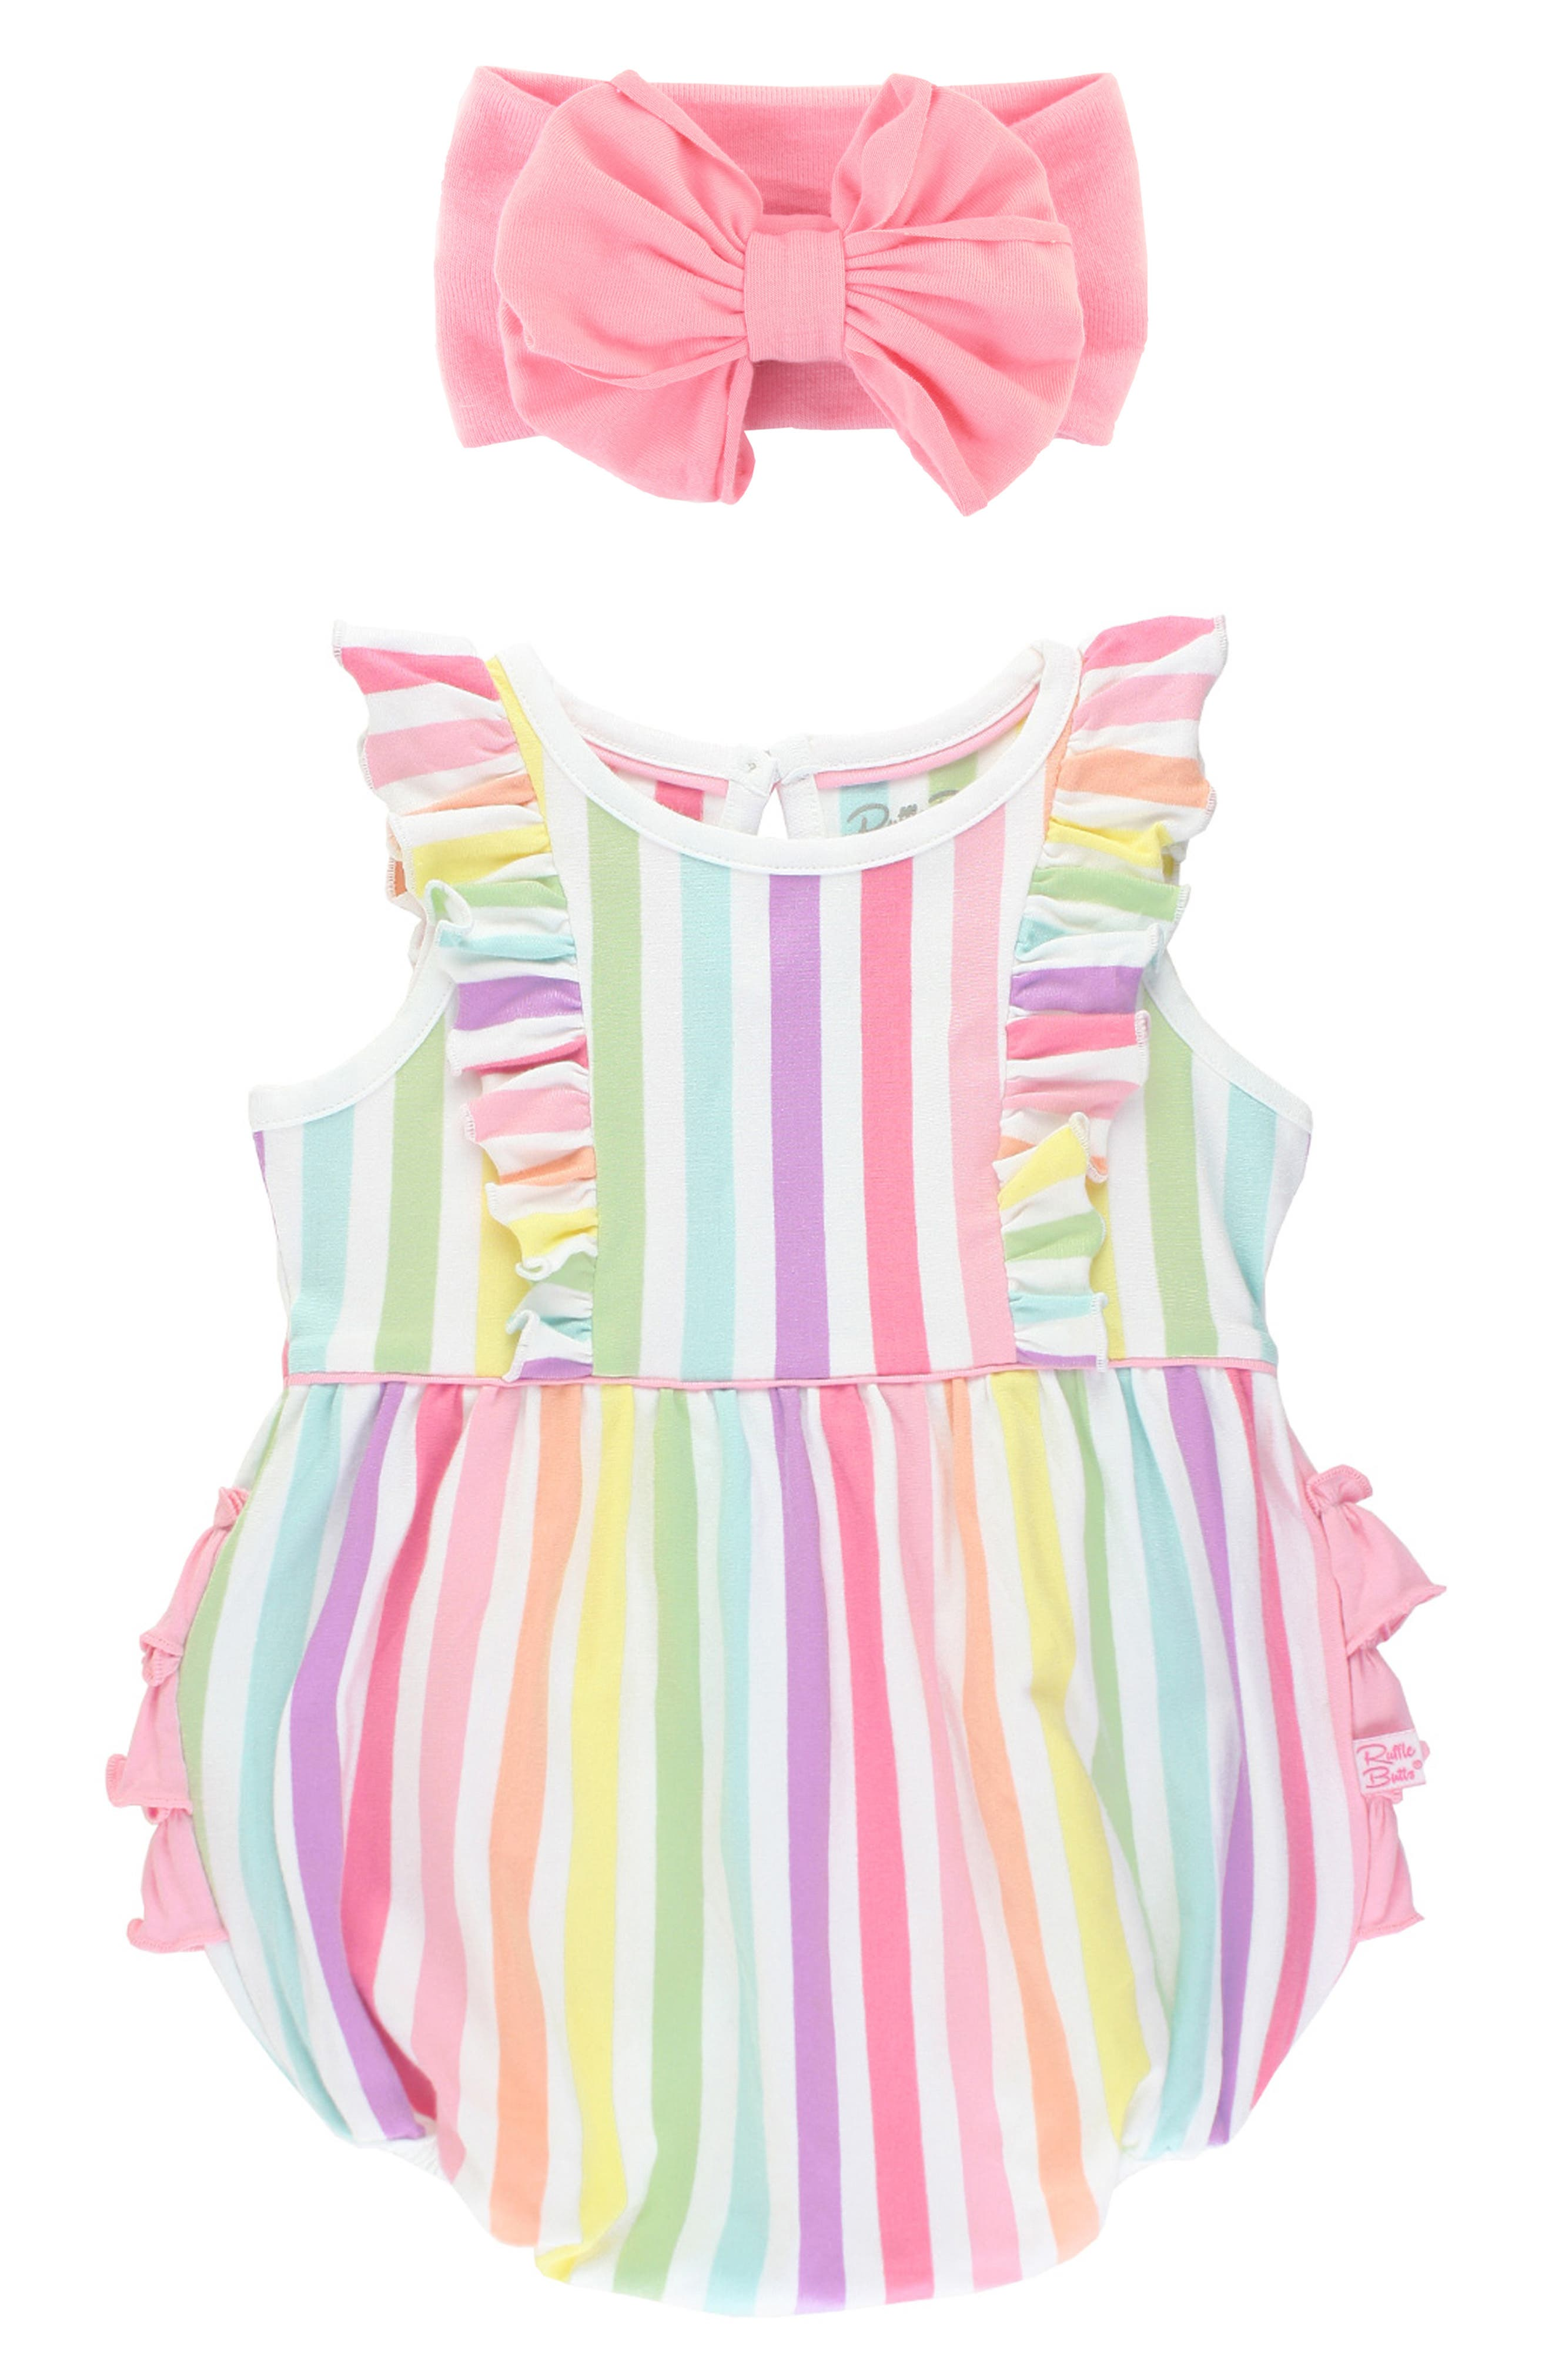 Colorful rainbow stripes and contrast ruffles dial up the cute factor on this bubble romper, while a matching head wrap sends the look into adorable overdrive. Style Name: Rufflebutts Rainbow Stripe Bubble Romper & Bow Head Wrap Set (Baby). Style Number: 6036378. Available in stores.